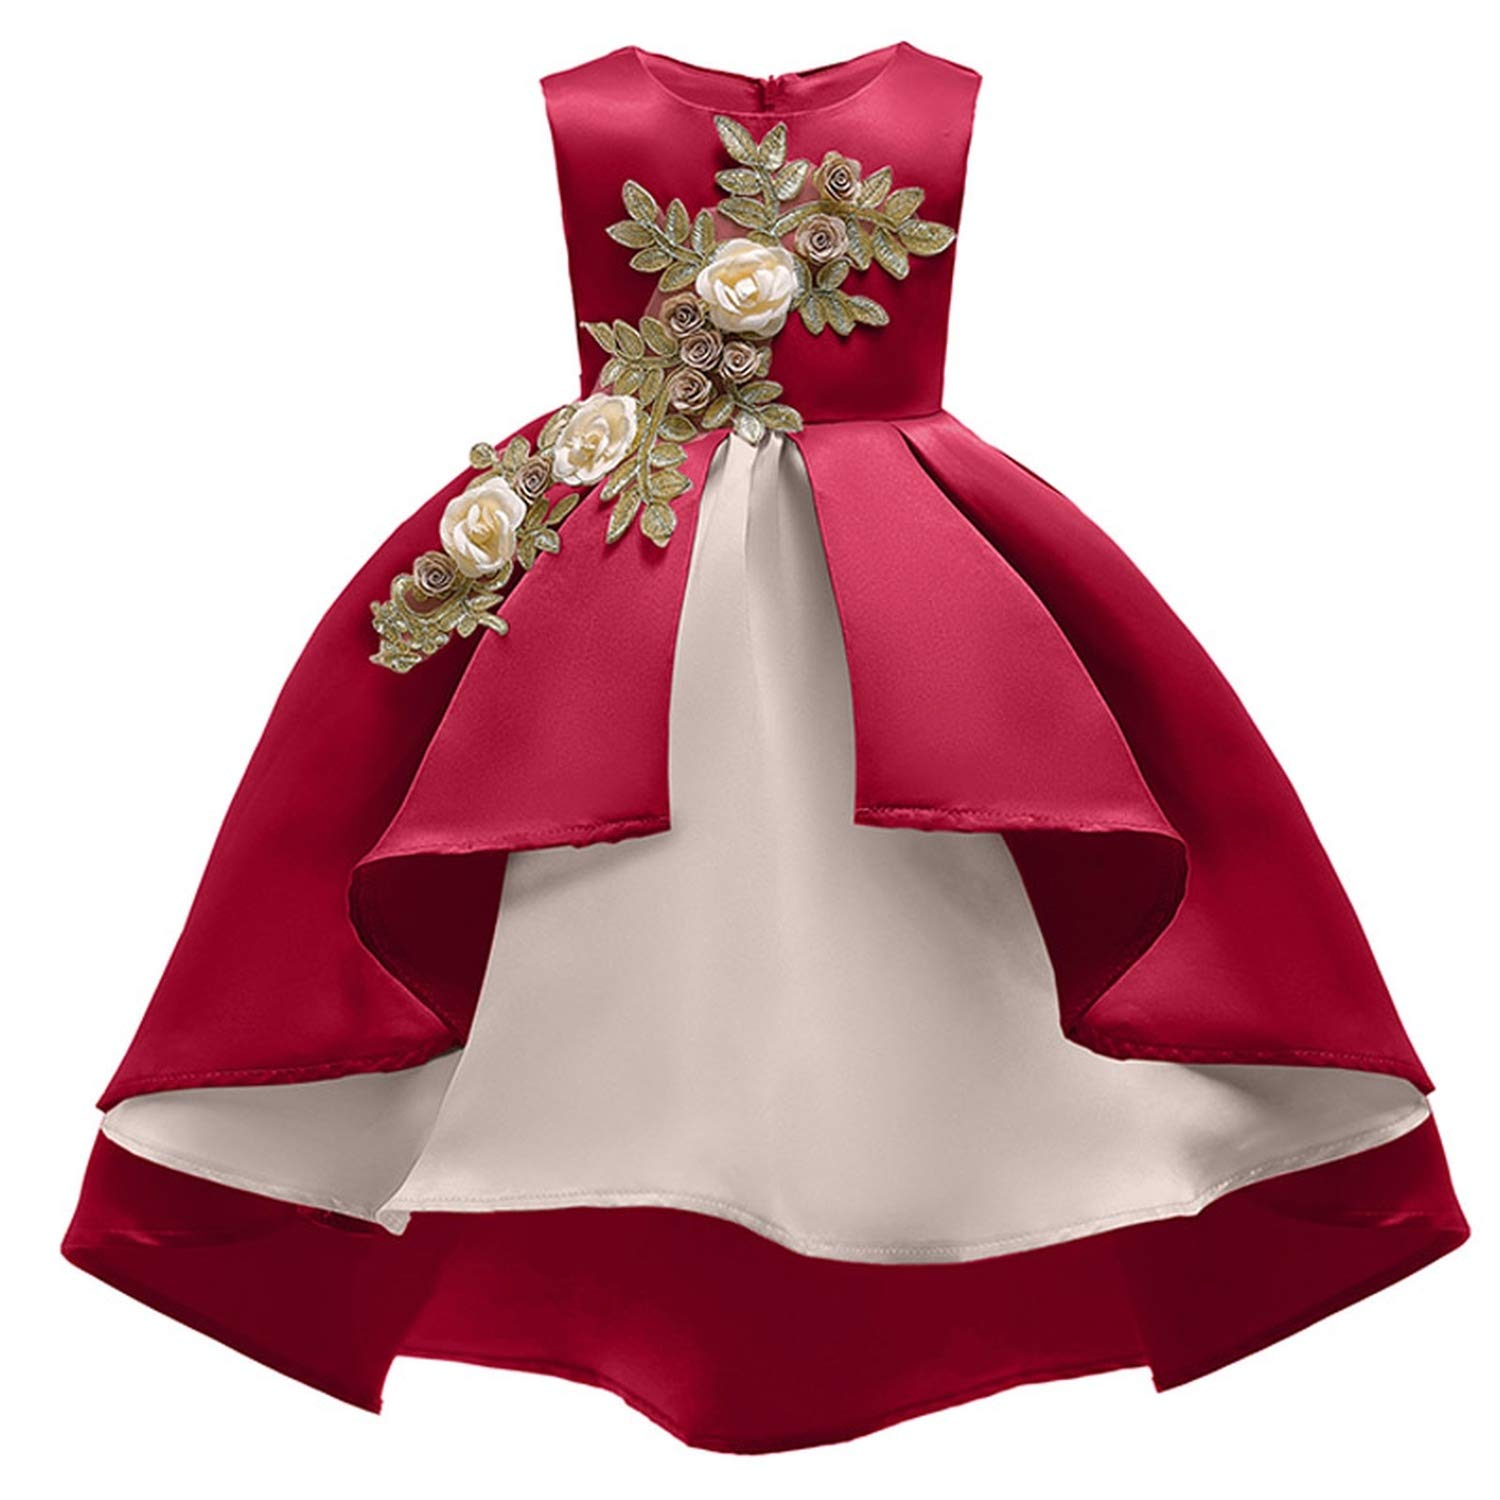 Girls Dress Summer Kids Dresses for Girl Princess Children Baby Tutu 2 3 4 5 6 7 8 9 10 Years,As Picture10,9 by Gooding Day (Image #5)